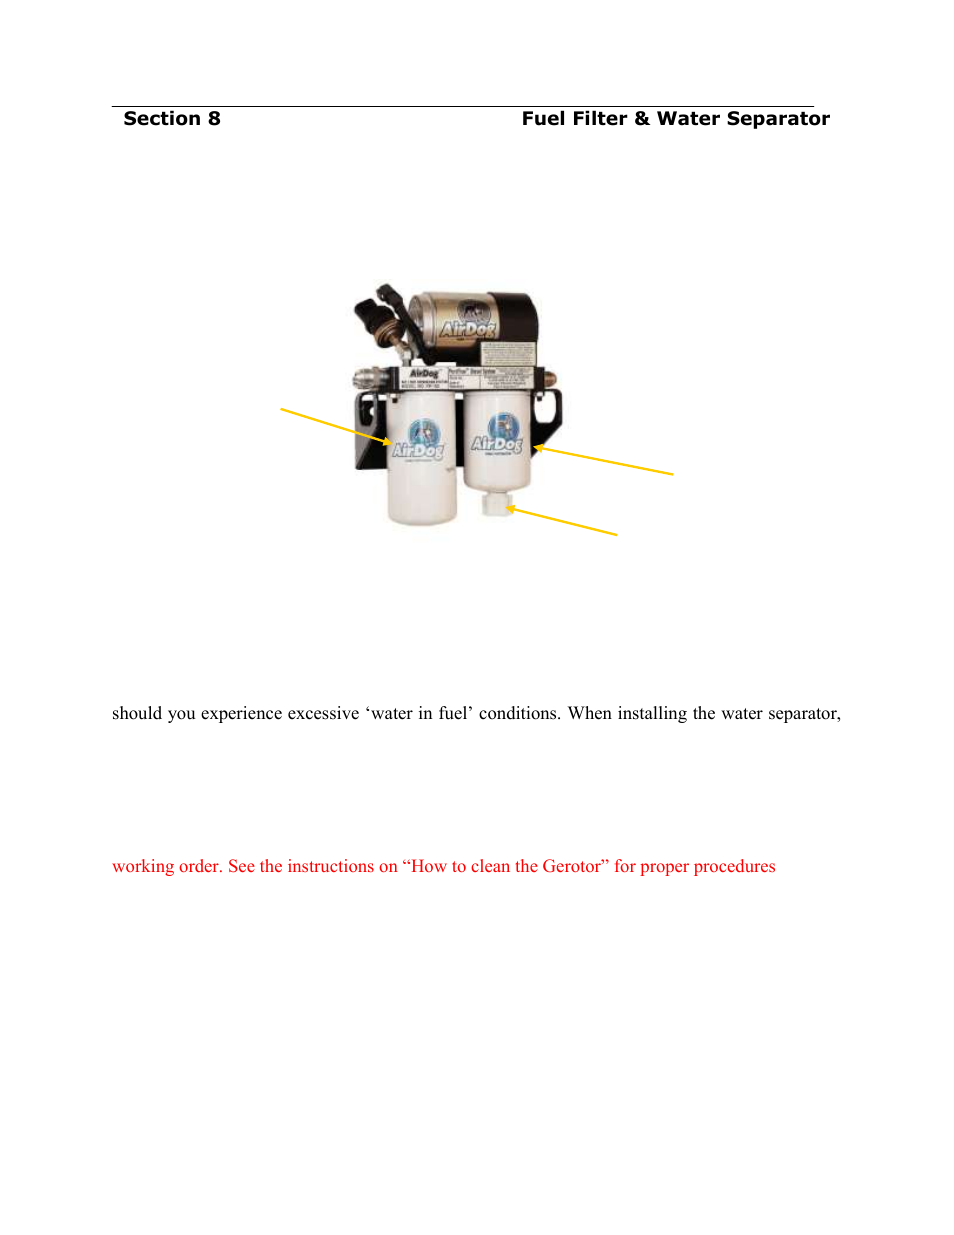 Filter Service Recommendations Pureflow Airdog Df 165 4g Gm Duramax Diesel Fuel 2015 User Manual Page 18 23